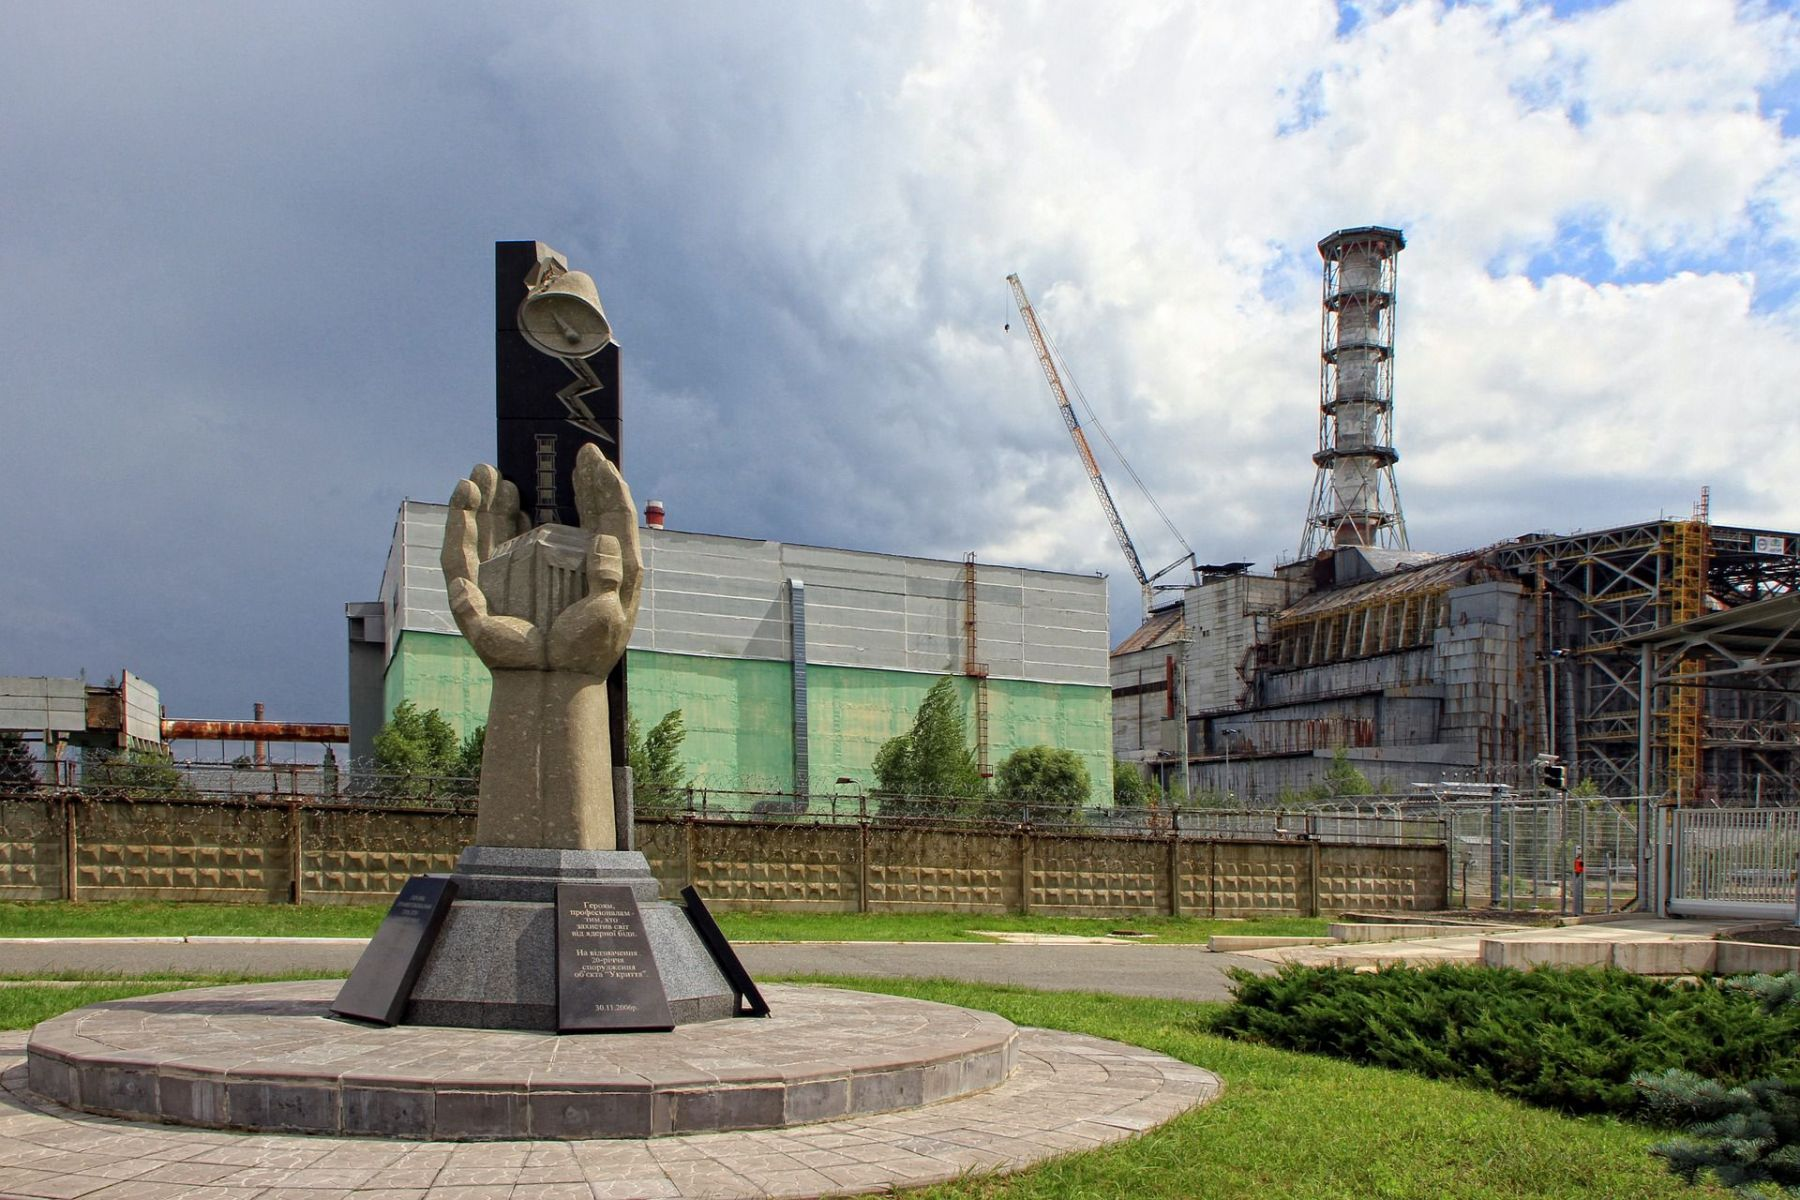 Chernobyl monument and reactor